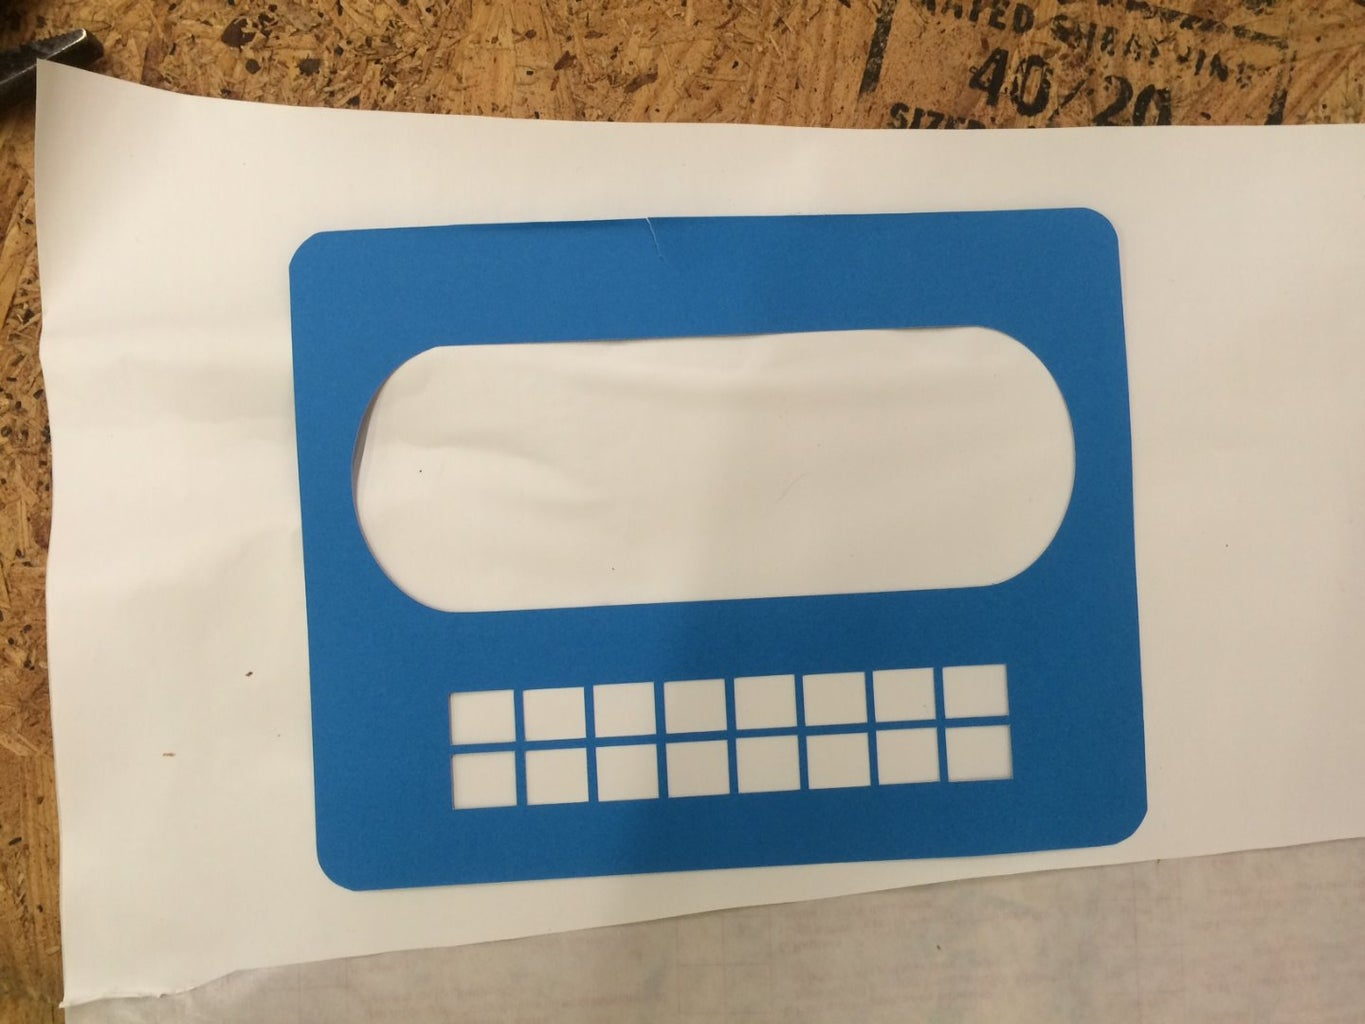 Step 6: Load Your Material Into the Silhouette Portrait and Print.